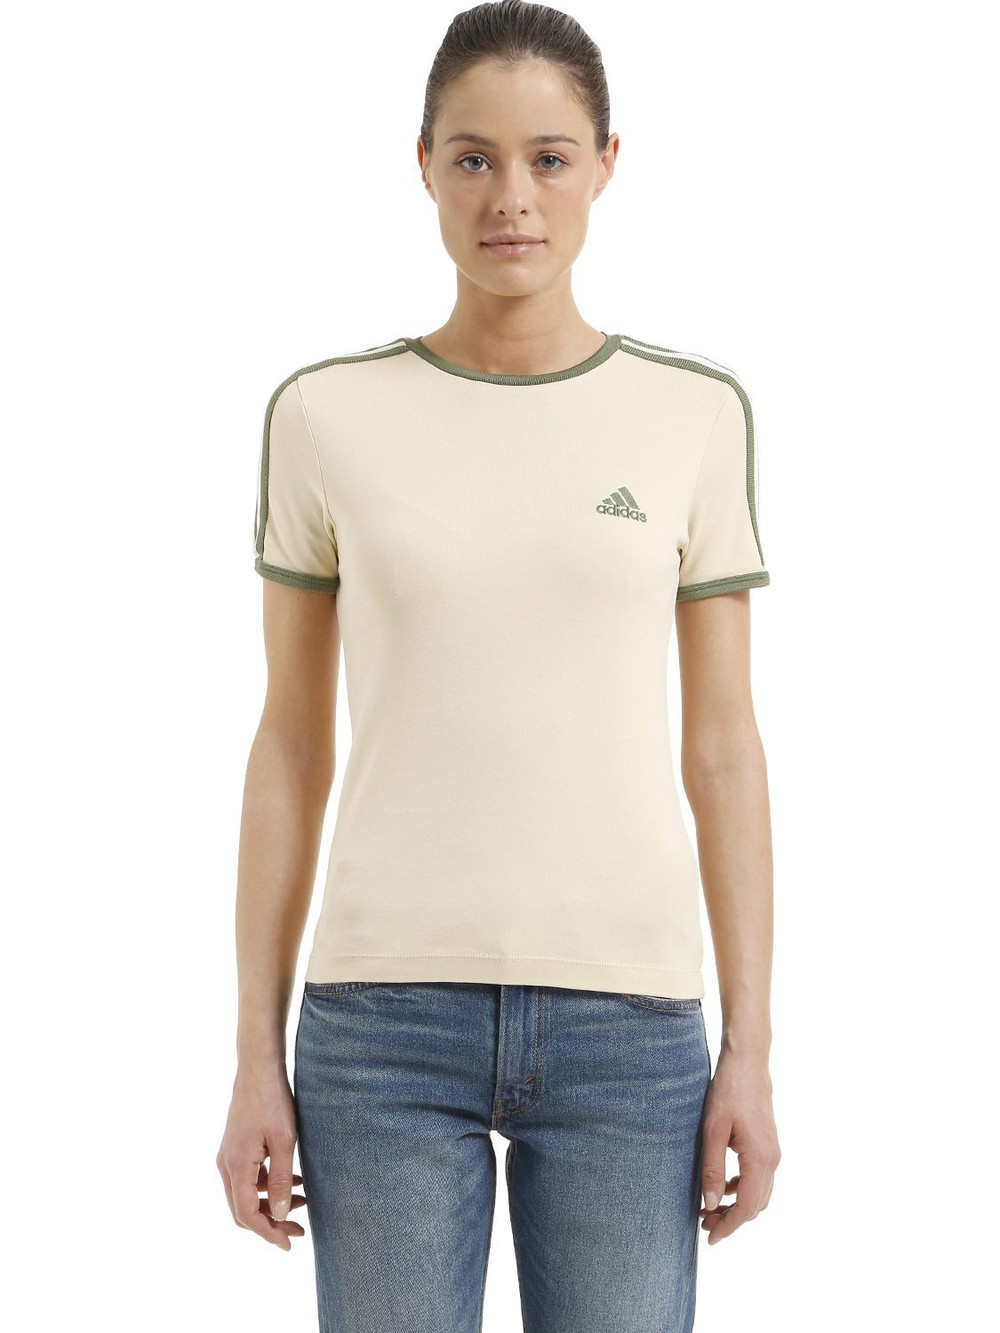 YEEZY Baby Fit Cotton Jersey T-shirt in green / white